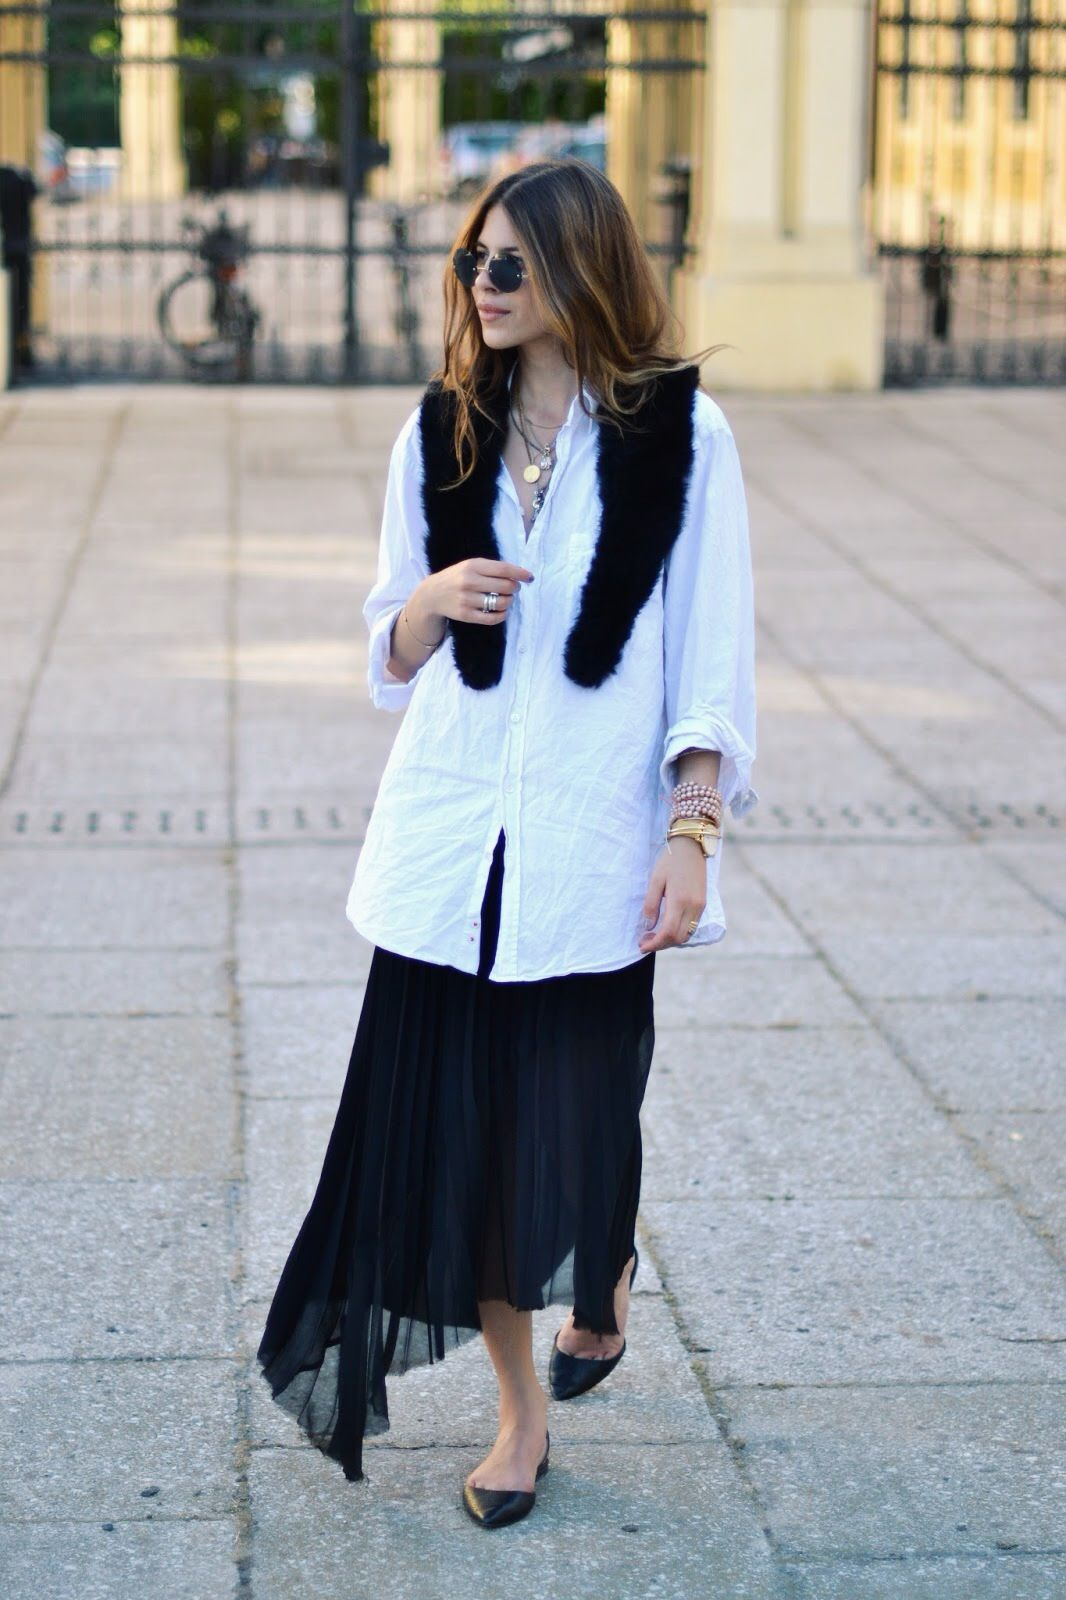 great skirt & white shirt. stolen moments with #MajaWyh. Copenhagen.